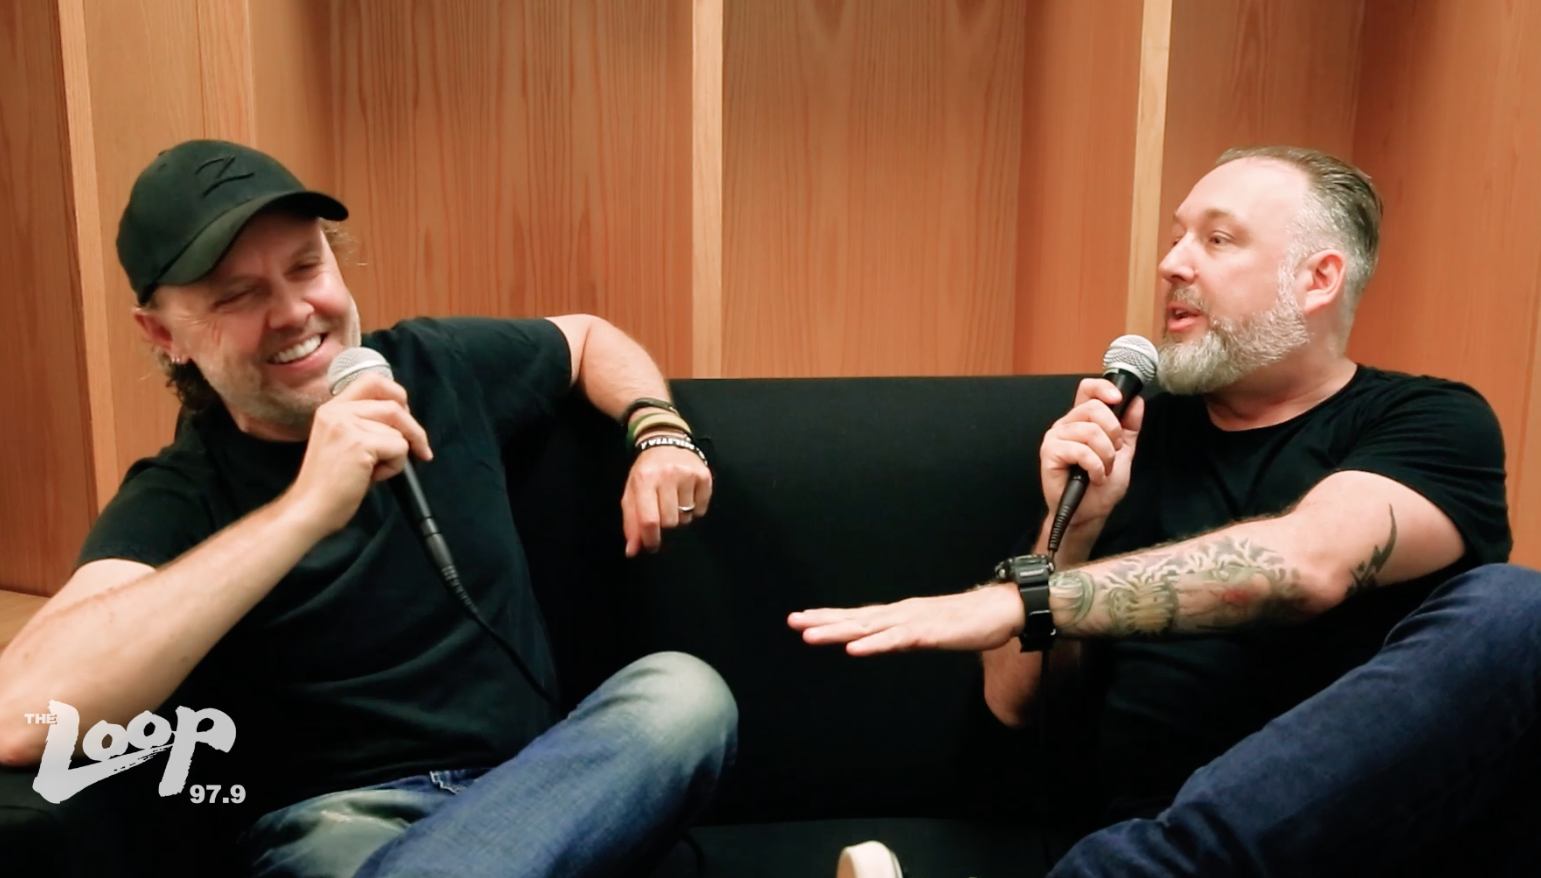 VIDEO: Metallica backstage with The Loop